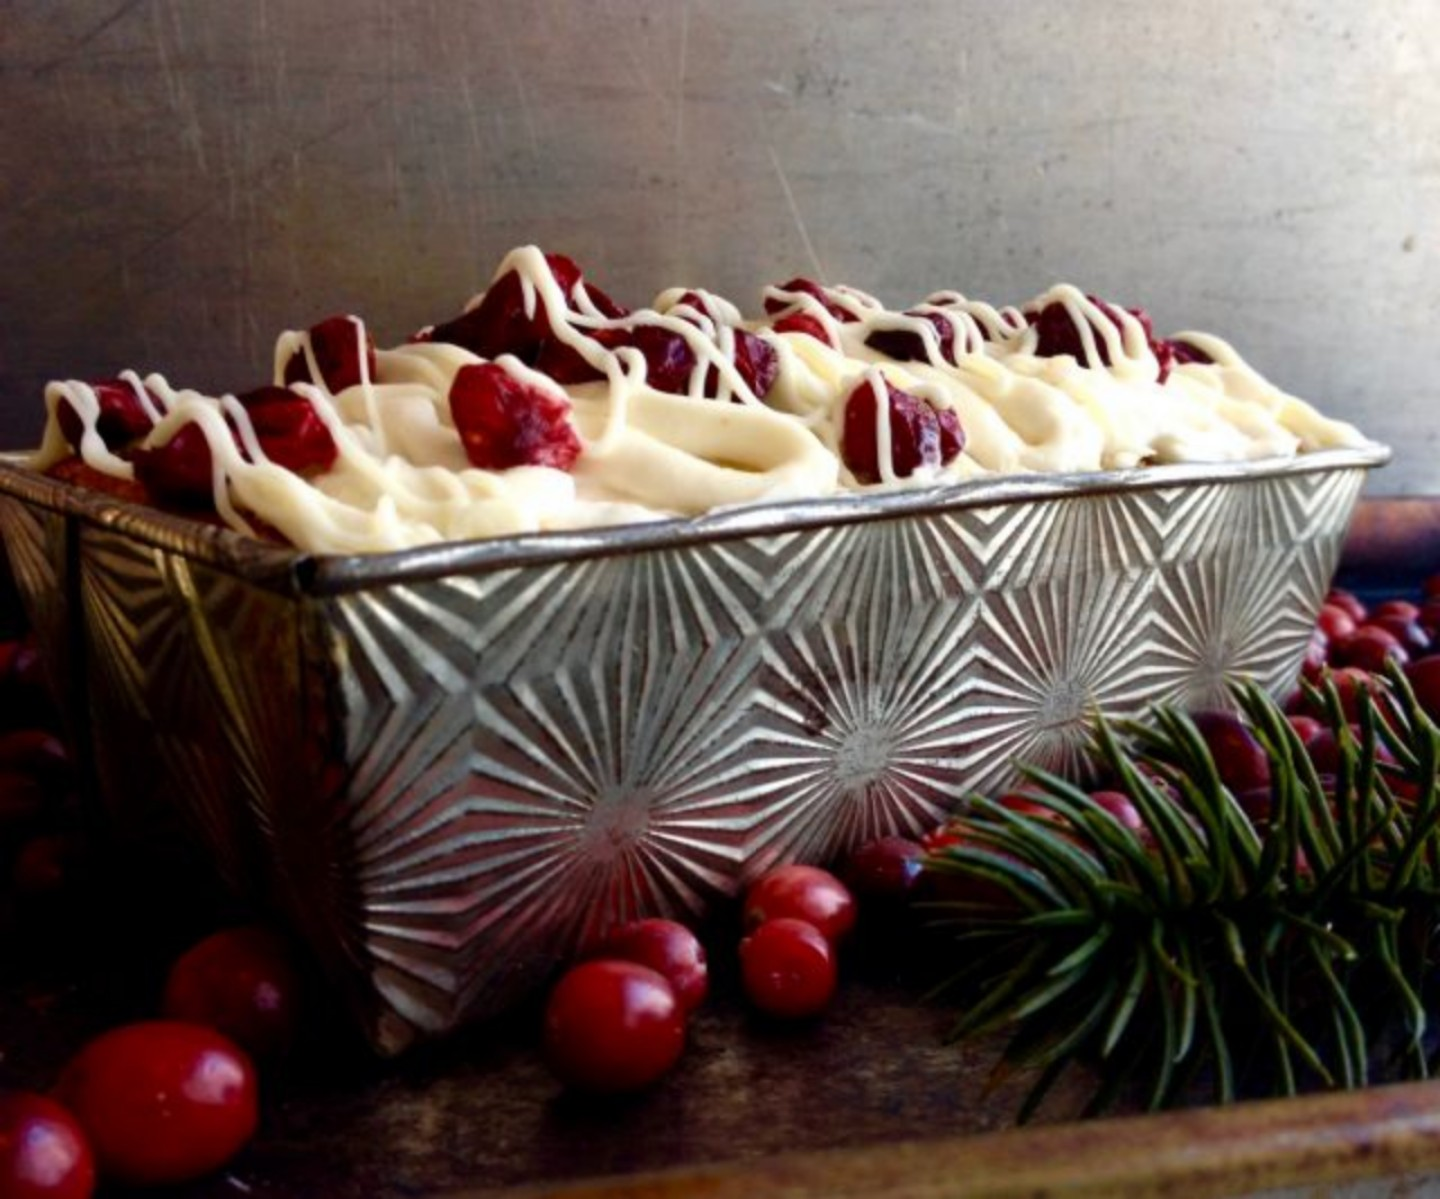 Cranberry & White Chocolate Teacake